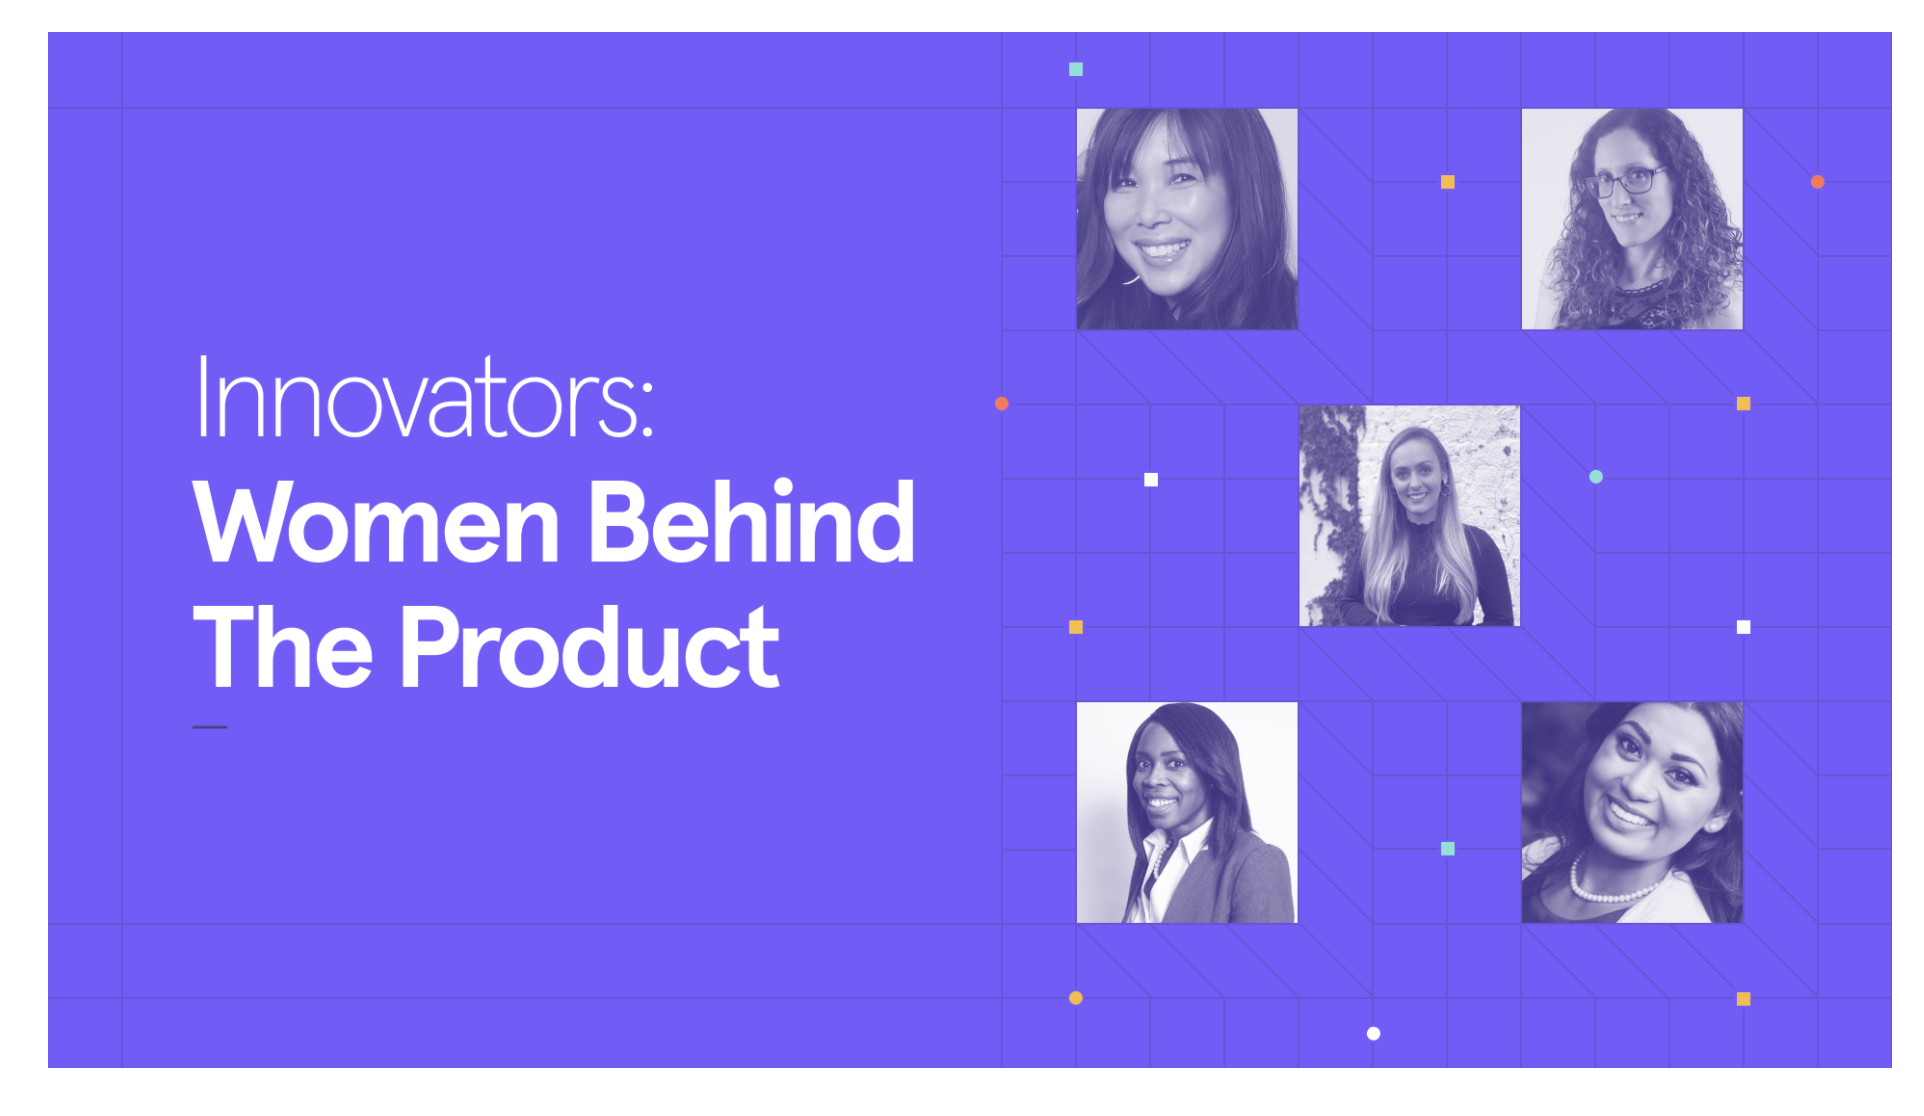 Innovators: Women Behind the Product